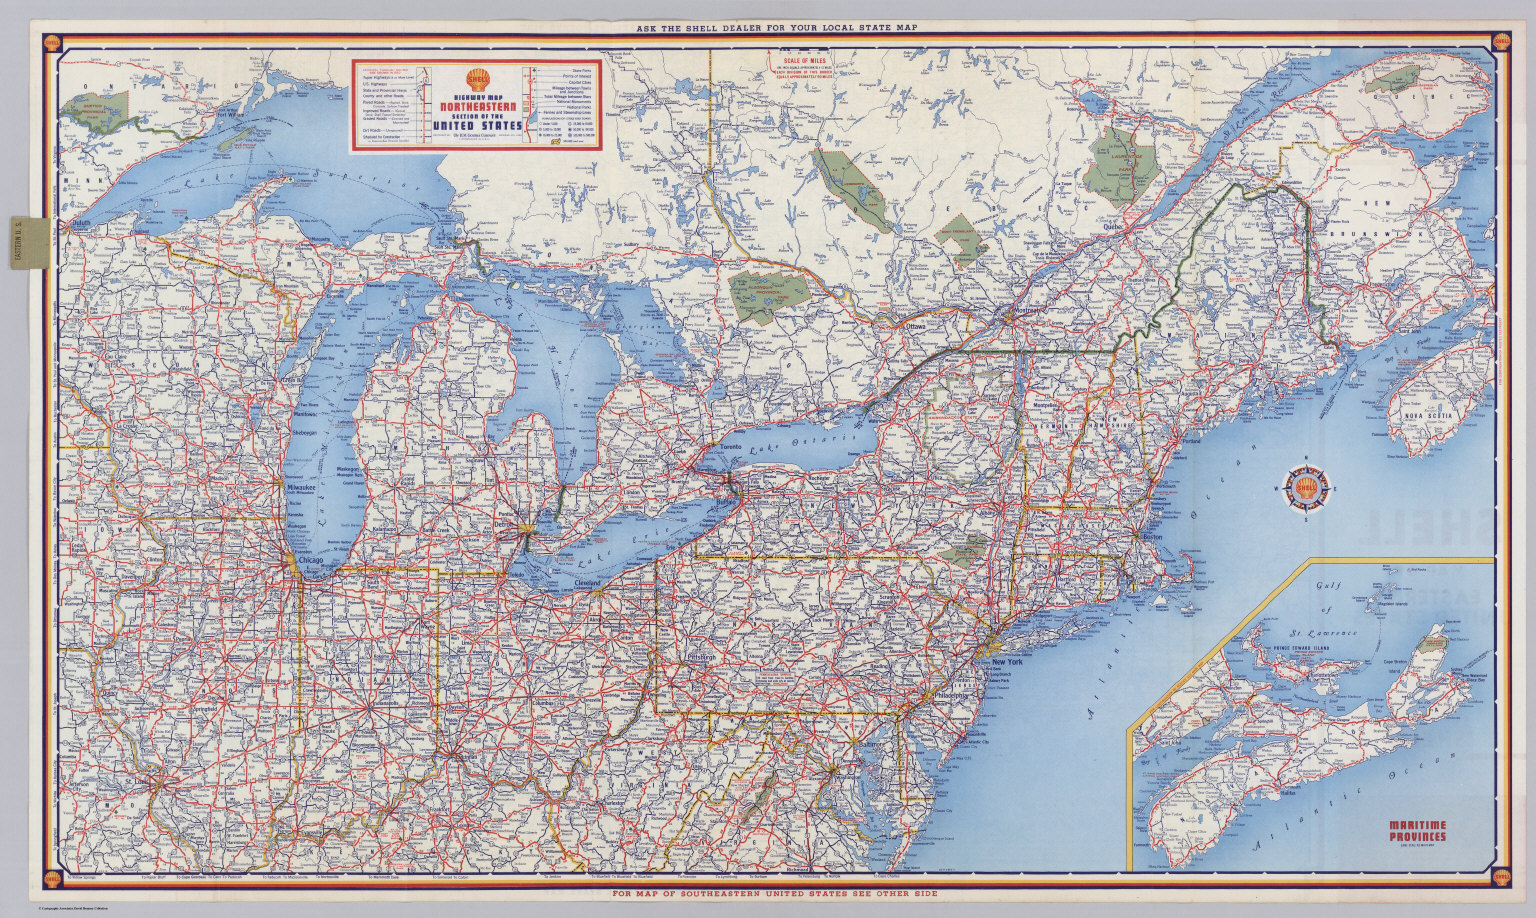 Shell Highway Map Northeastern Section Of The United States - Road map of eastern us states